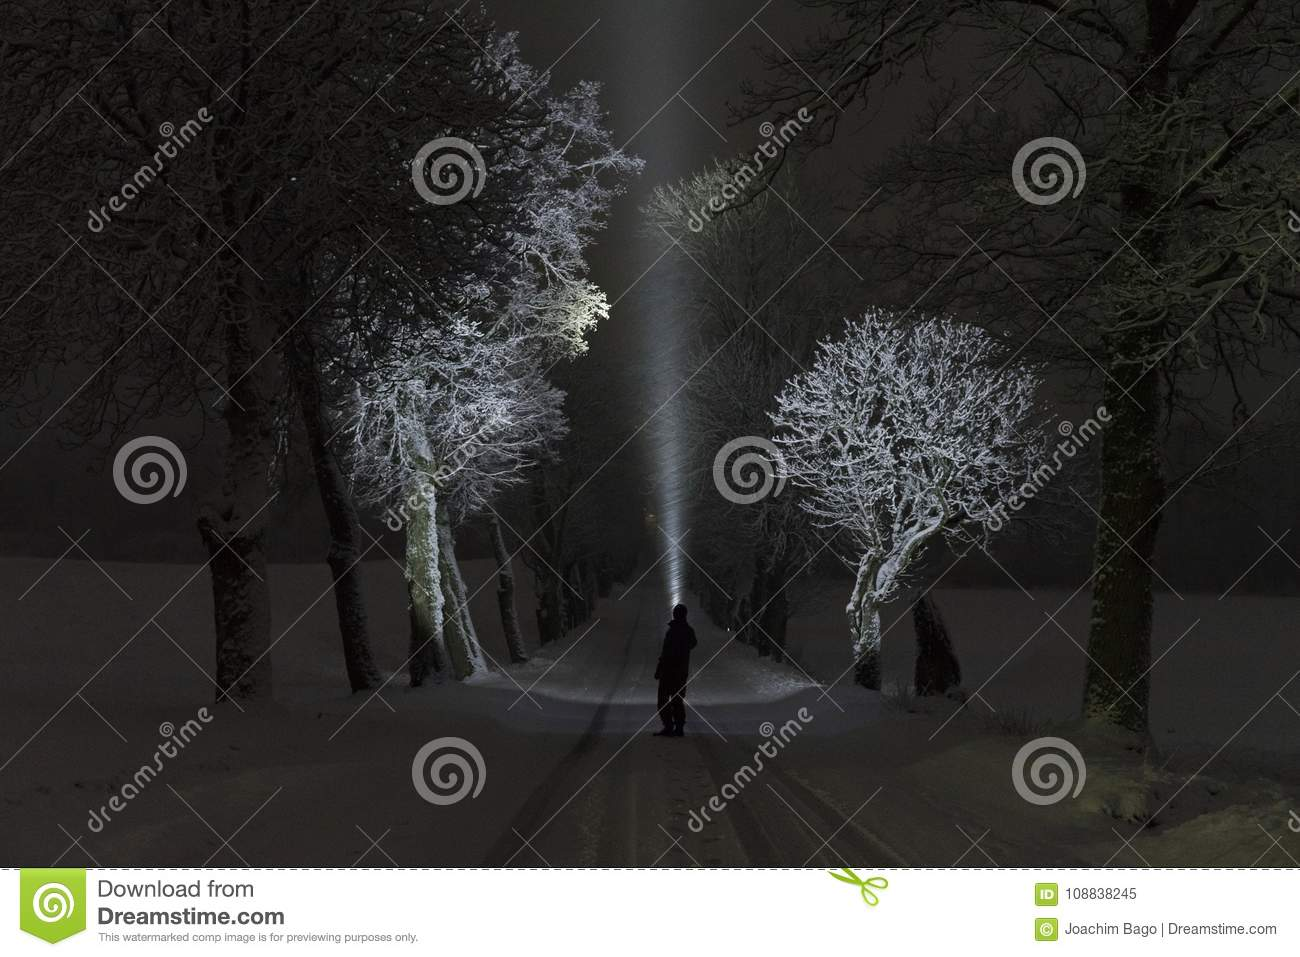 Man standing outdoors at night in tree alley shining with flashlight